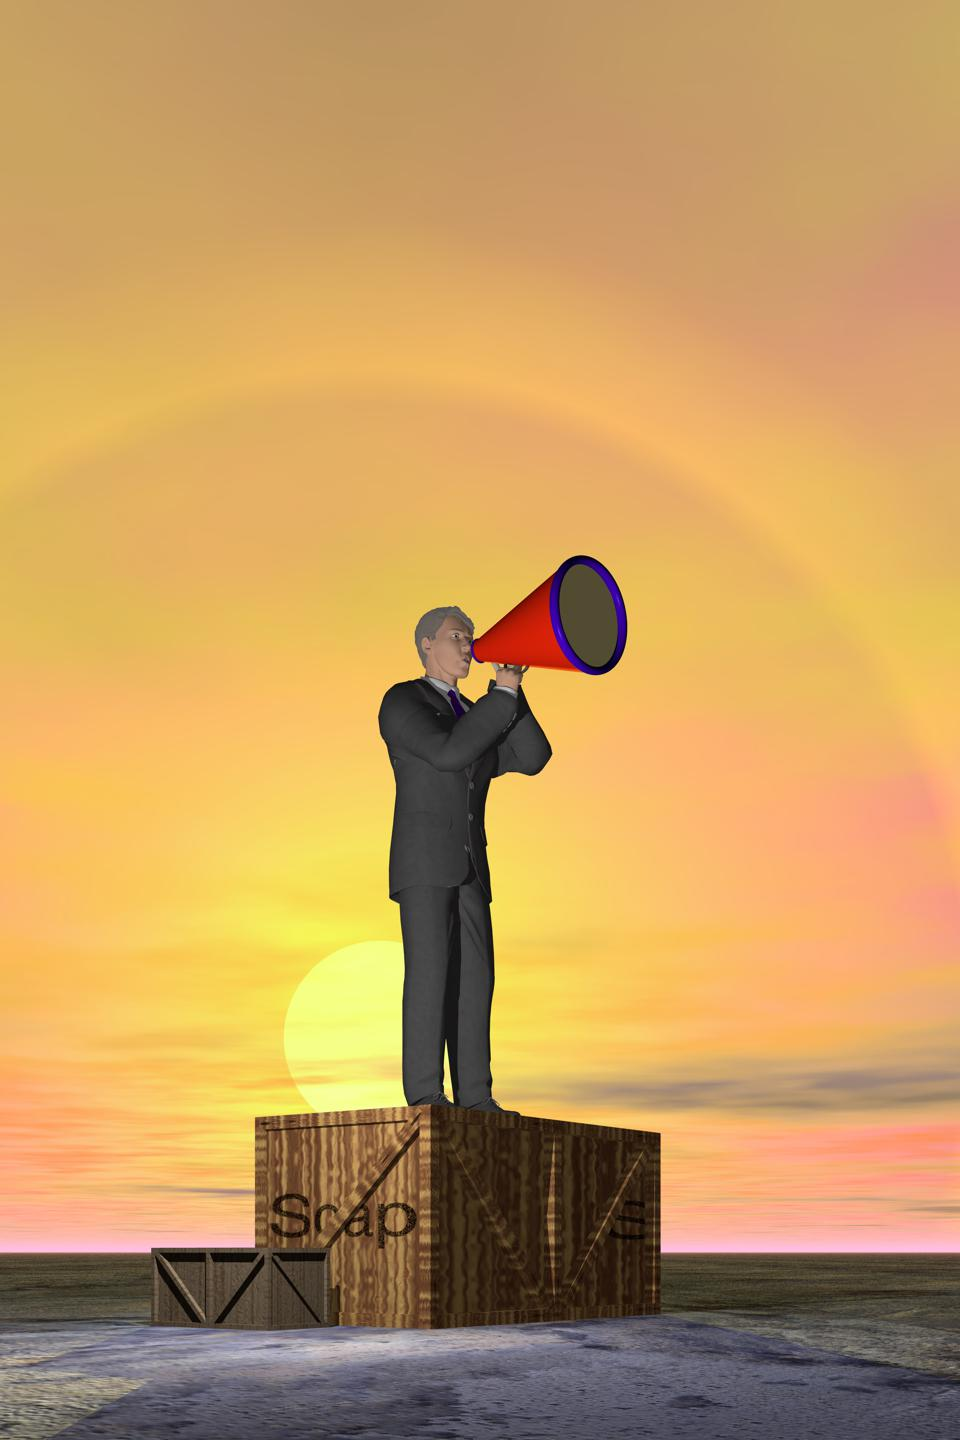 a business man shouts through a megaphone while standing on a soap box